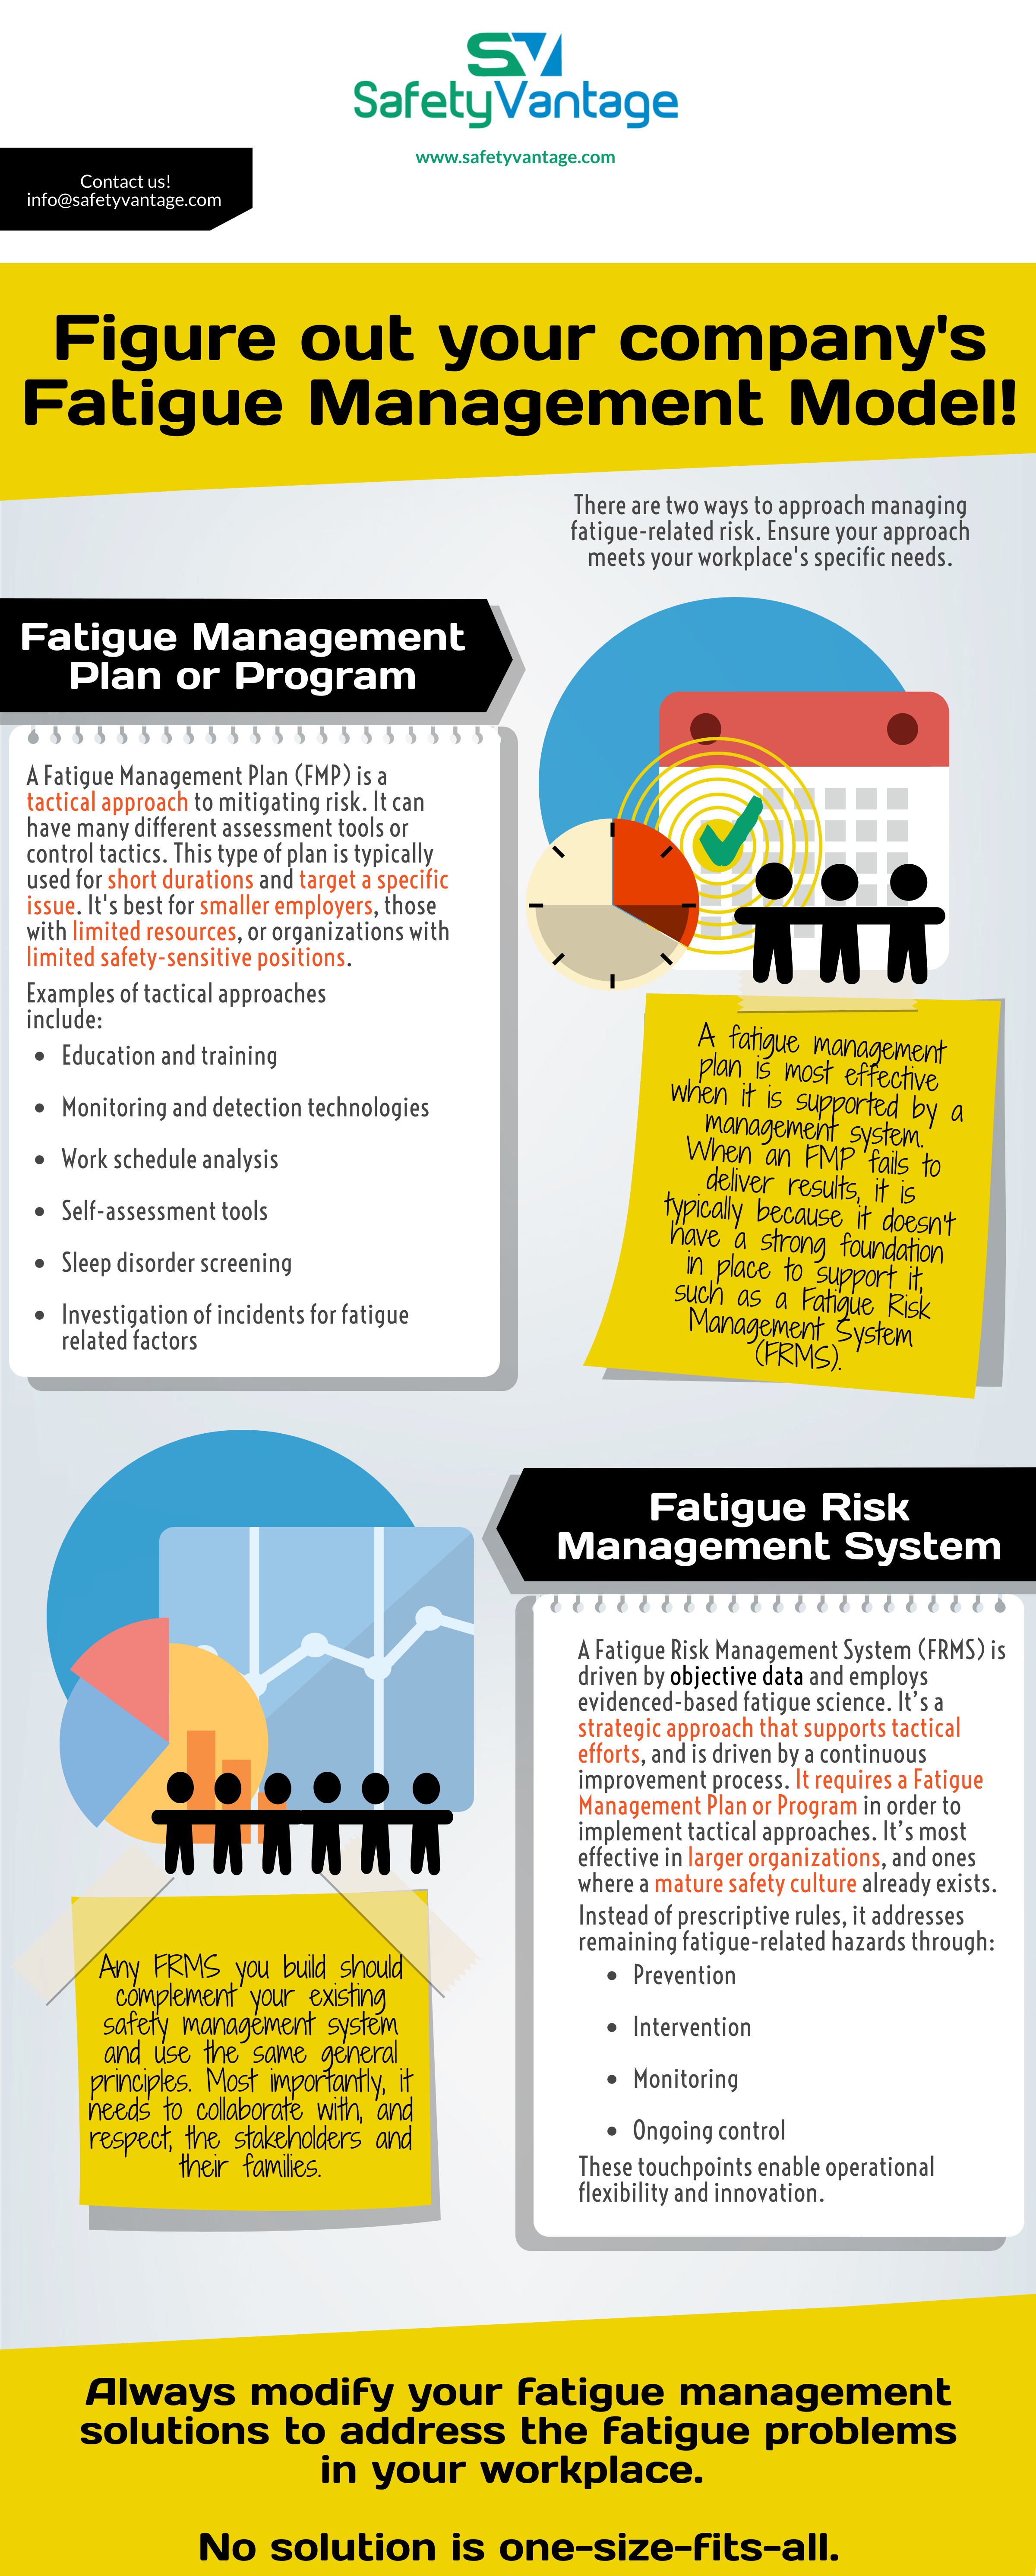 InfoGraphic: There are two ways to approach managing fatigue-related risk. Ensure your approach meets the specific needs of your workplace.